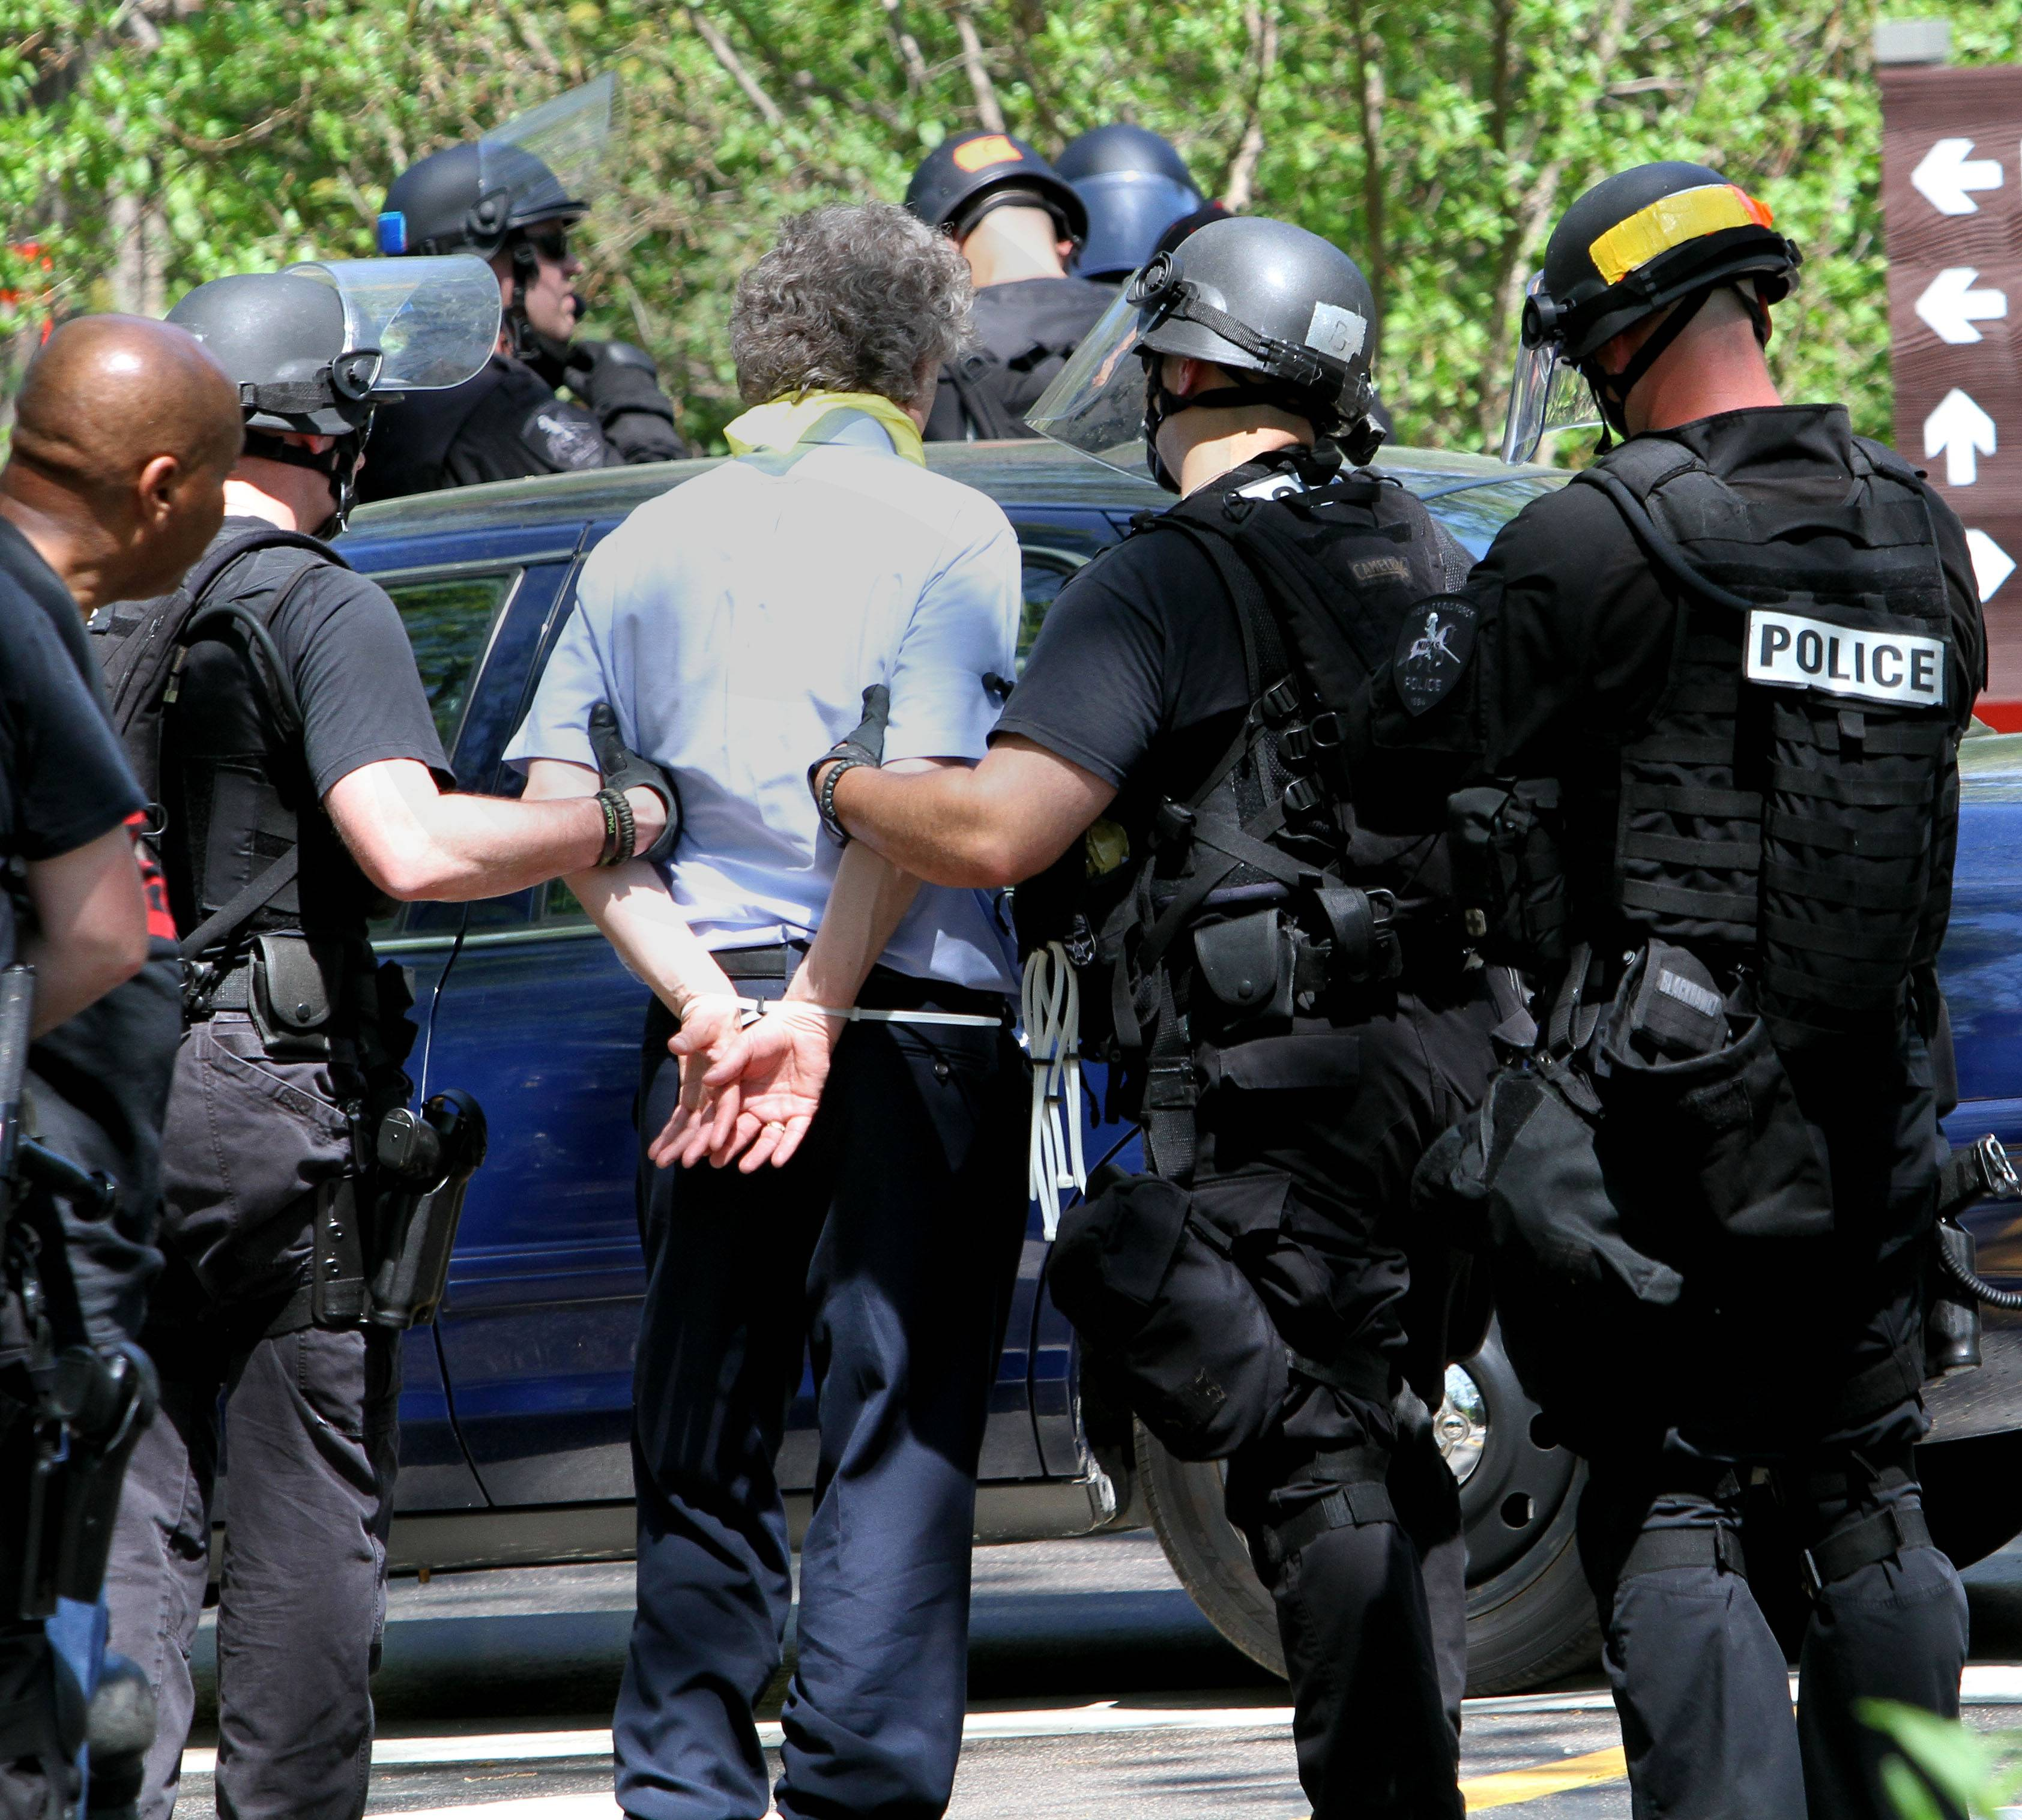 Police arrest a protester at McDonald's campus in Oak Brook on Wednesday.